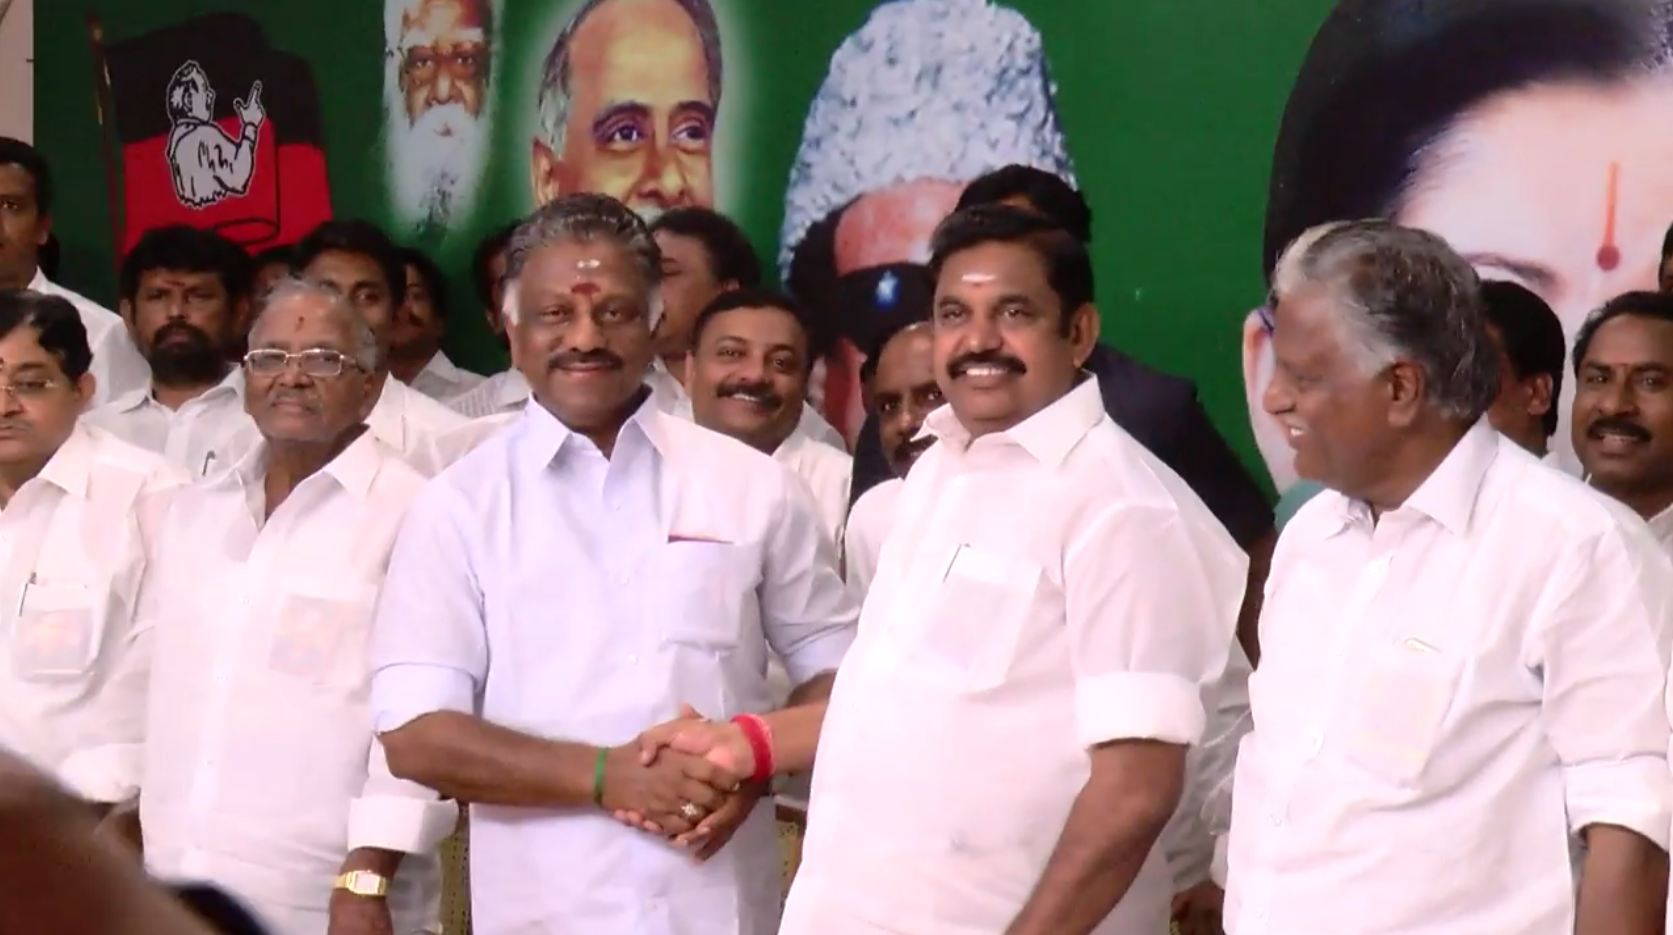 AIADMK merger row: Twists, turns and manoeuvers in Tamil Nadu's fertile ground of political opportunism